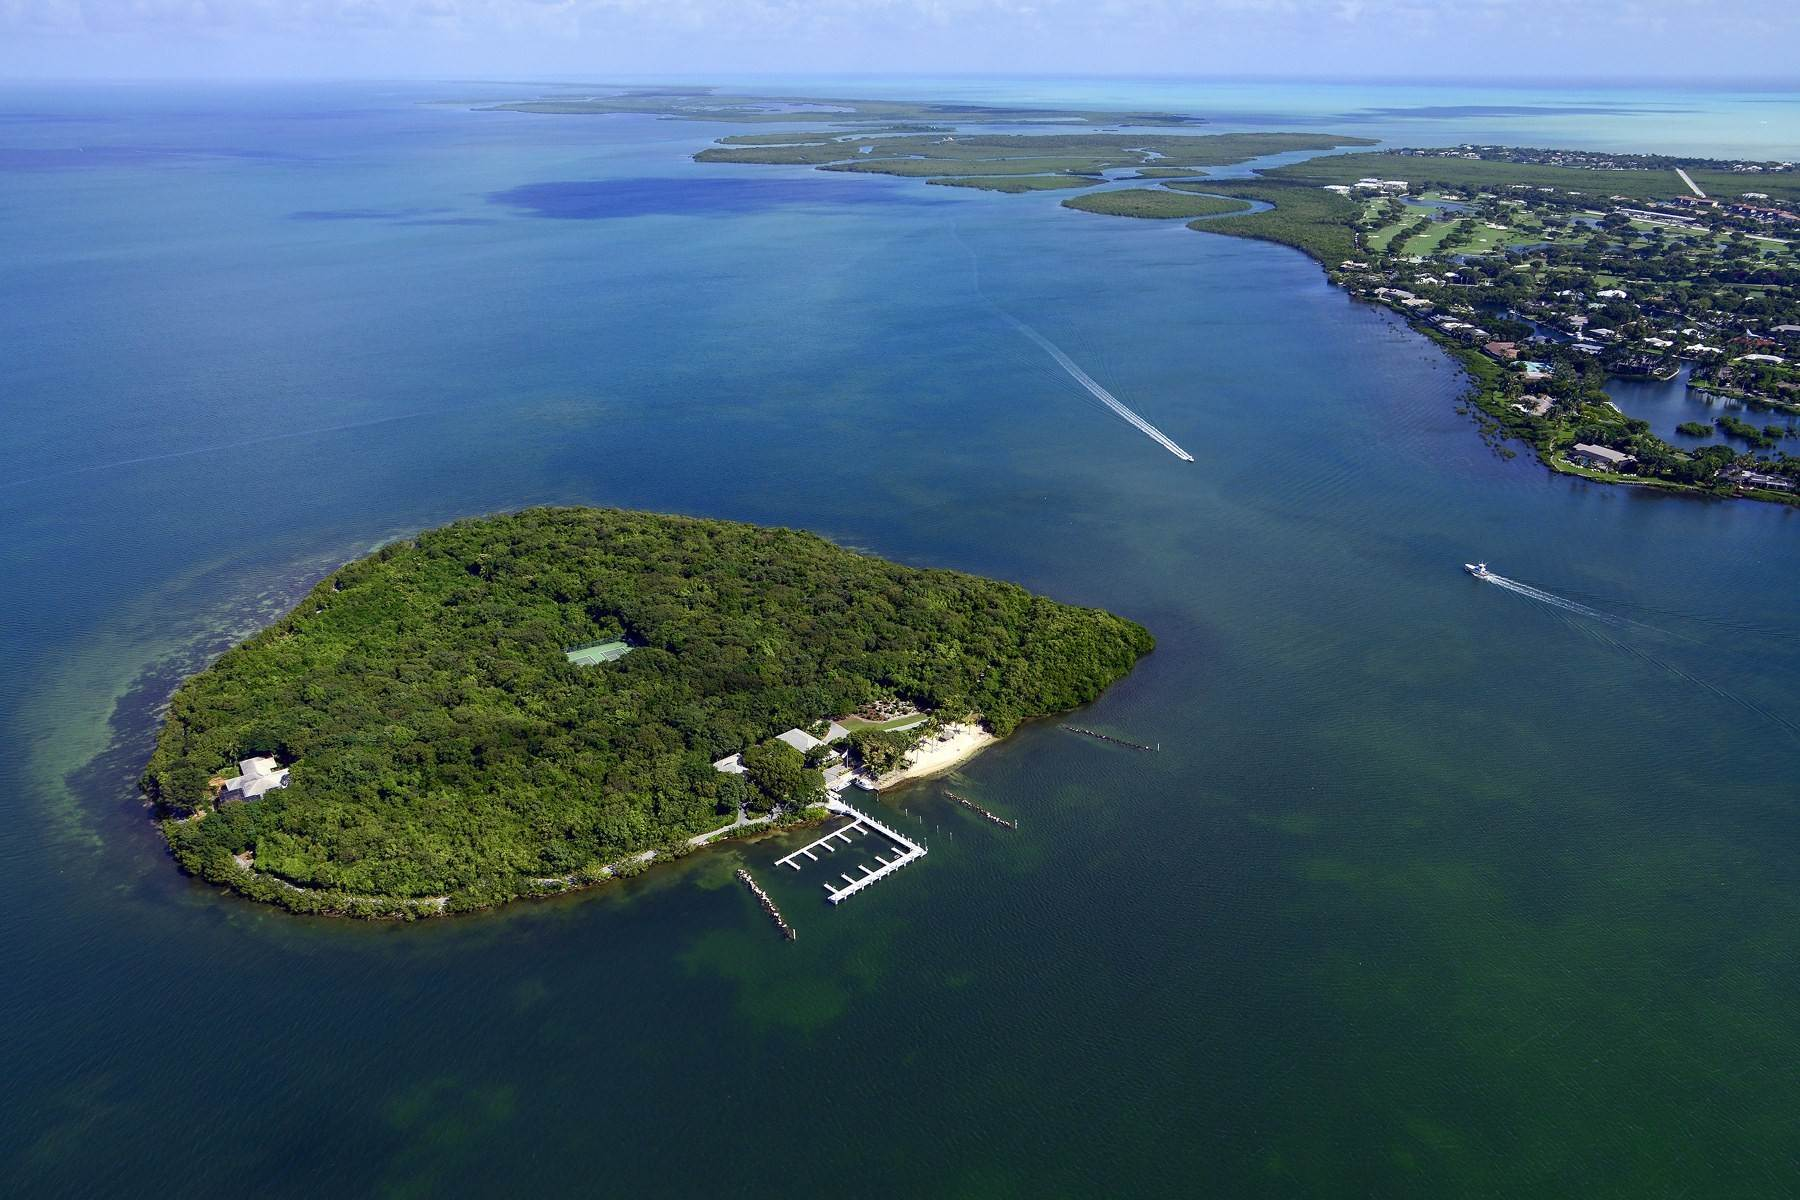 Property -de Pumpkin Key - Private Island, Key Largo, FL Key Largo, Florida 33037 Amerika Birleşik Devletleri